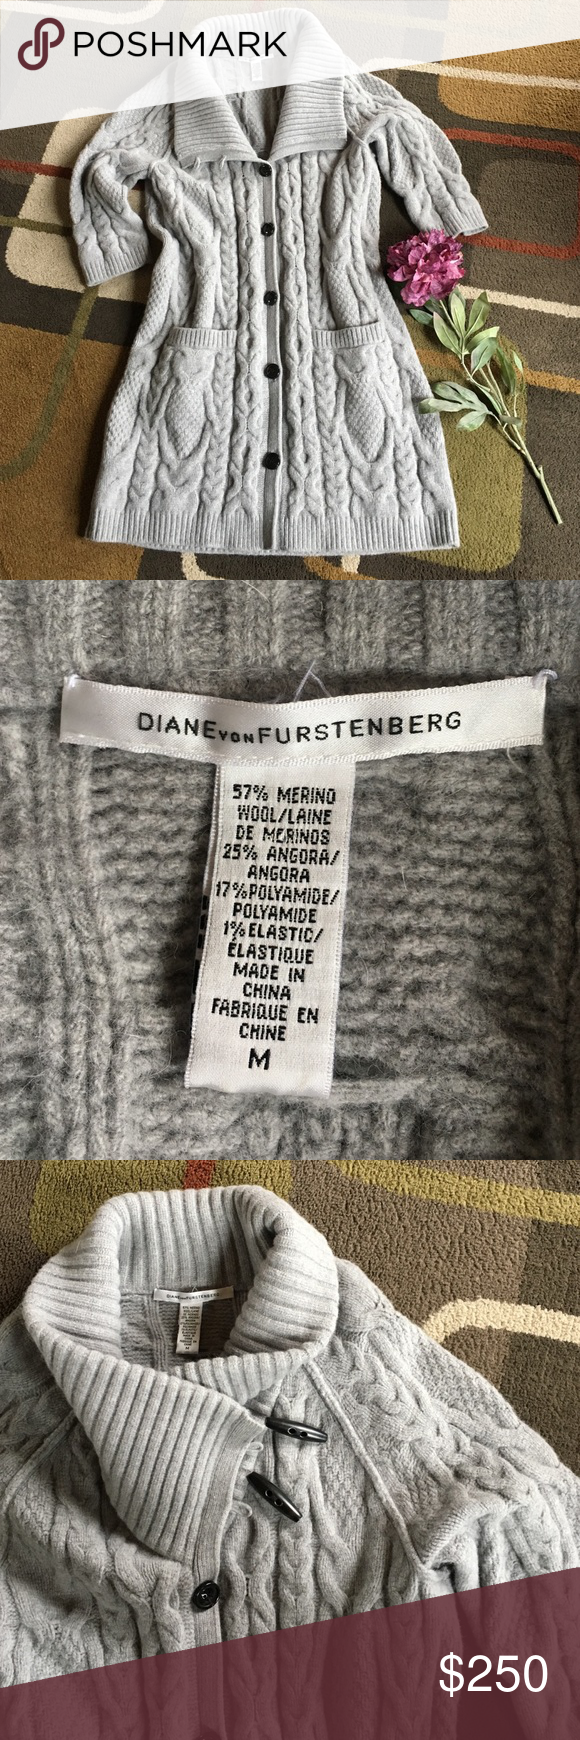 Spotted while shopping on Poshmark: Diane von Furstenberg cable knit cardigan🌺! #poshmark #fashion #shopping #style #Diane von Furstenberg #Sweaters